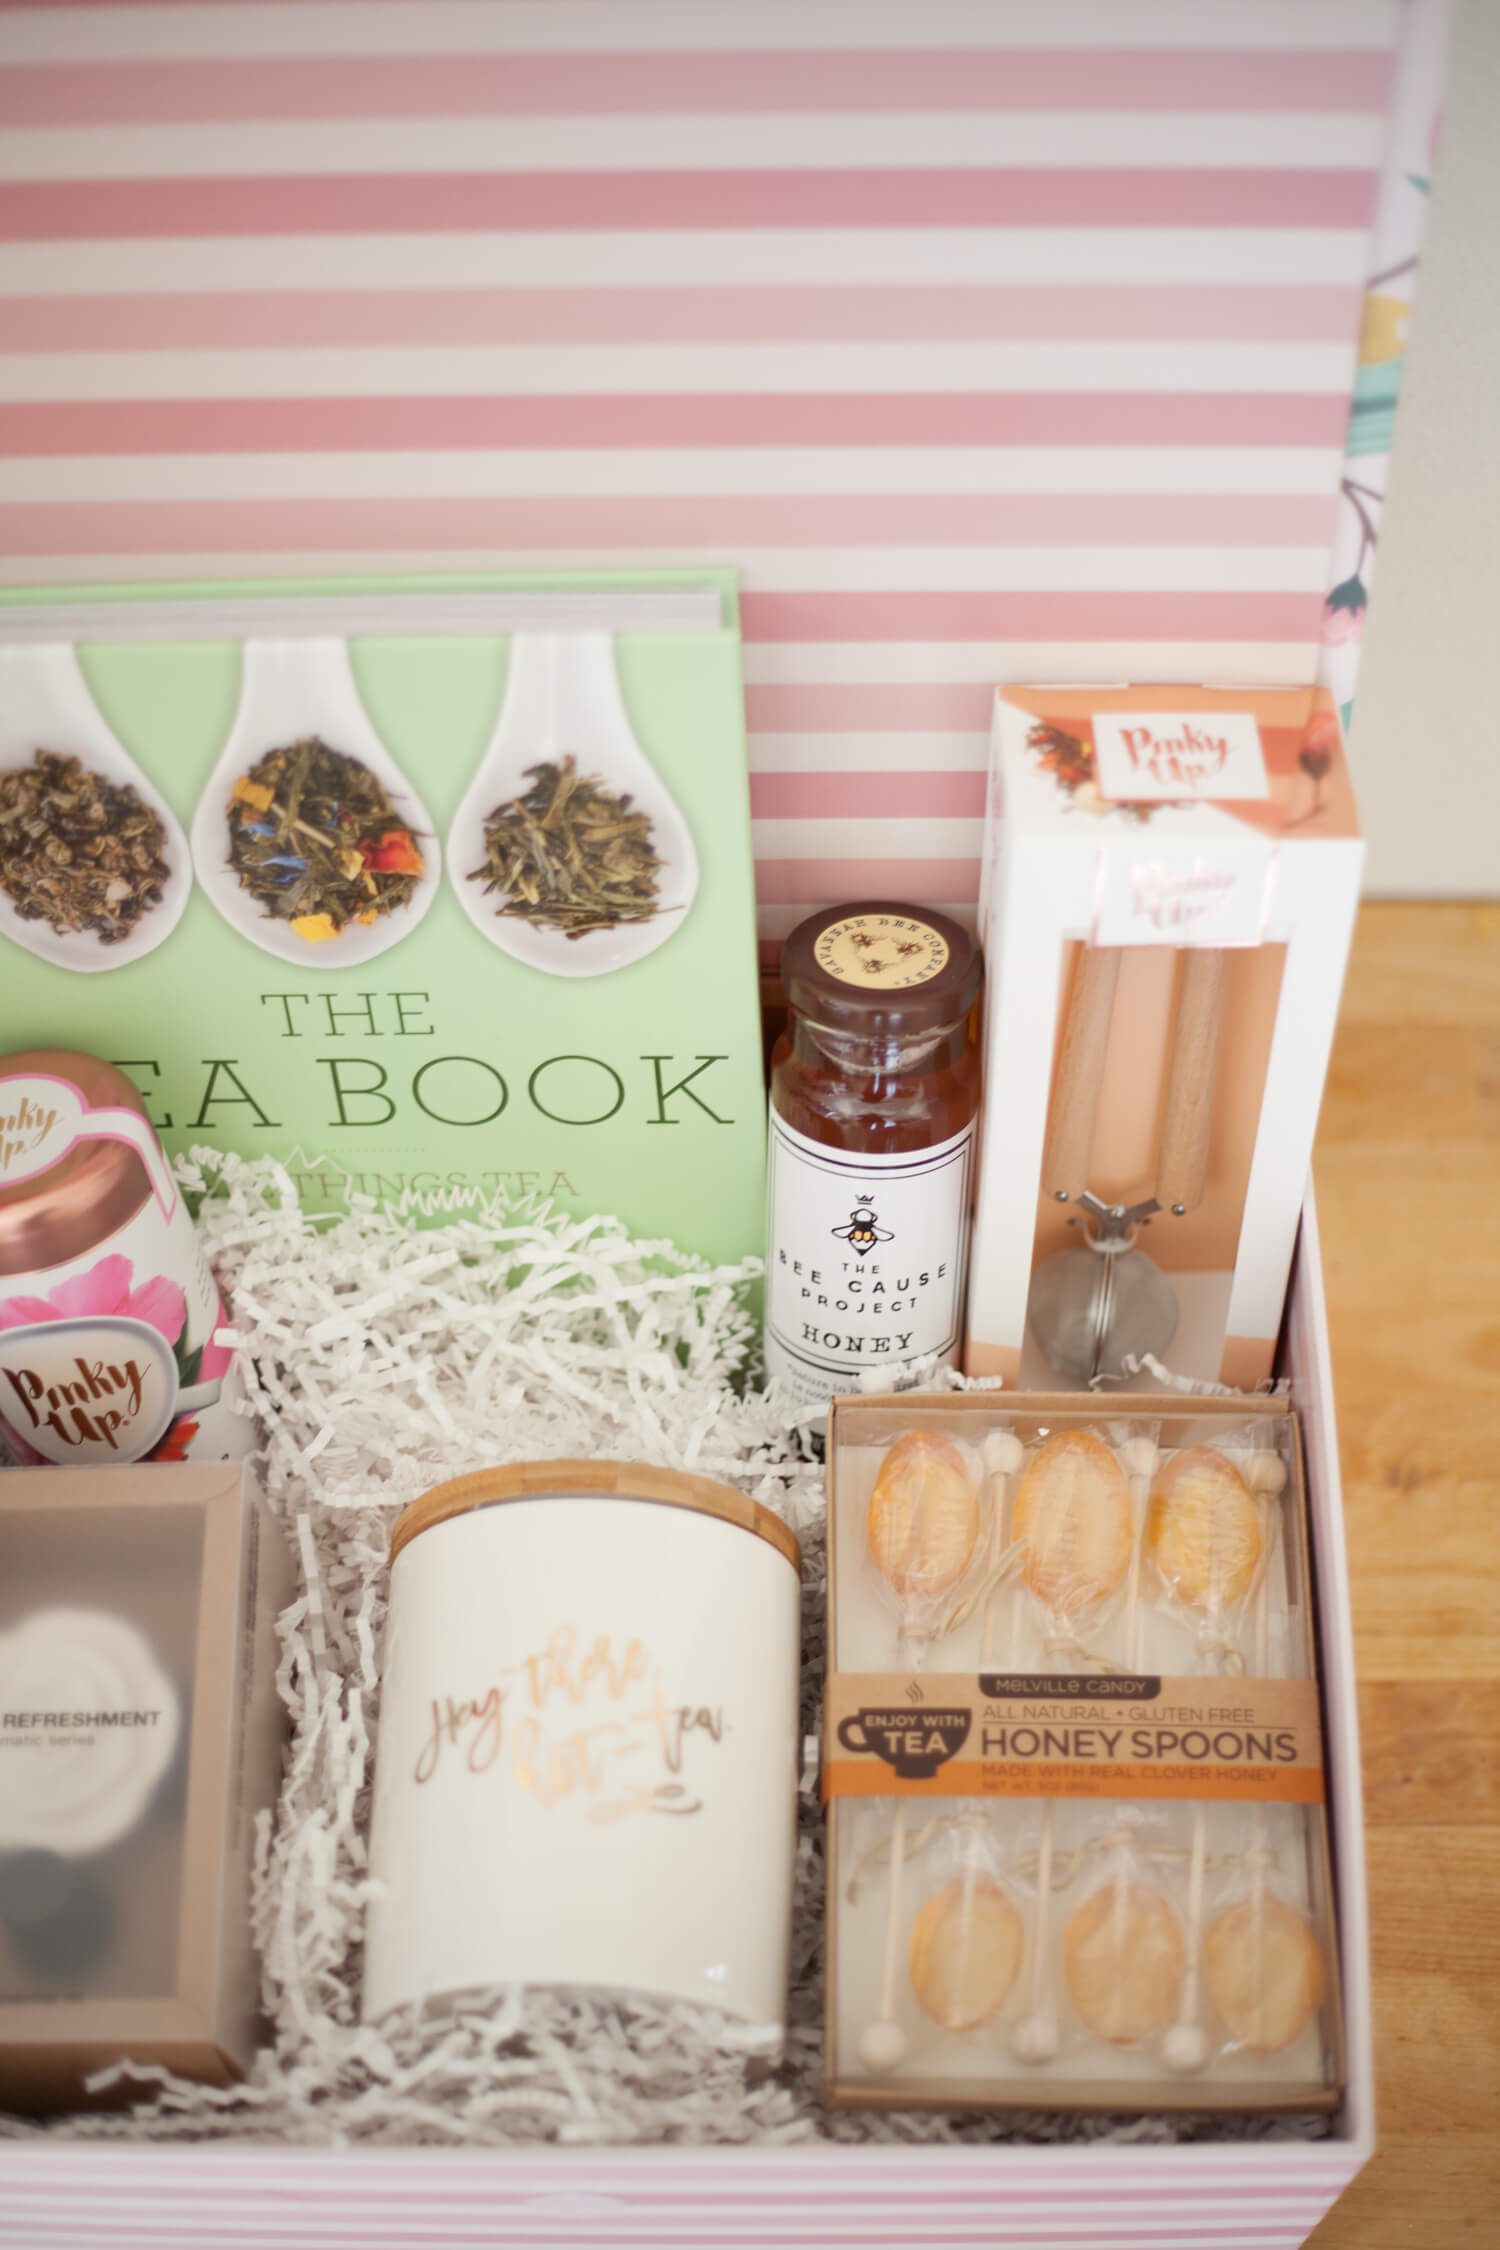 A fun gift basket idea for the tea lover!